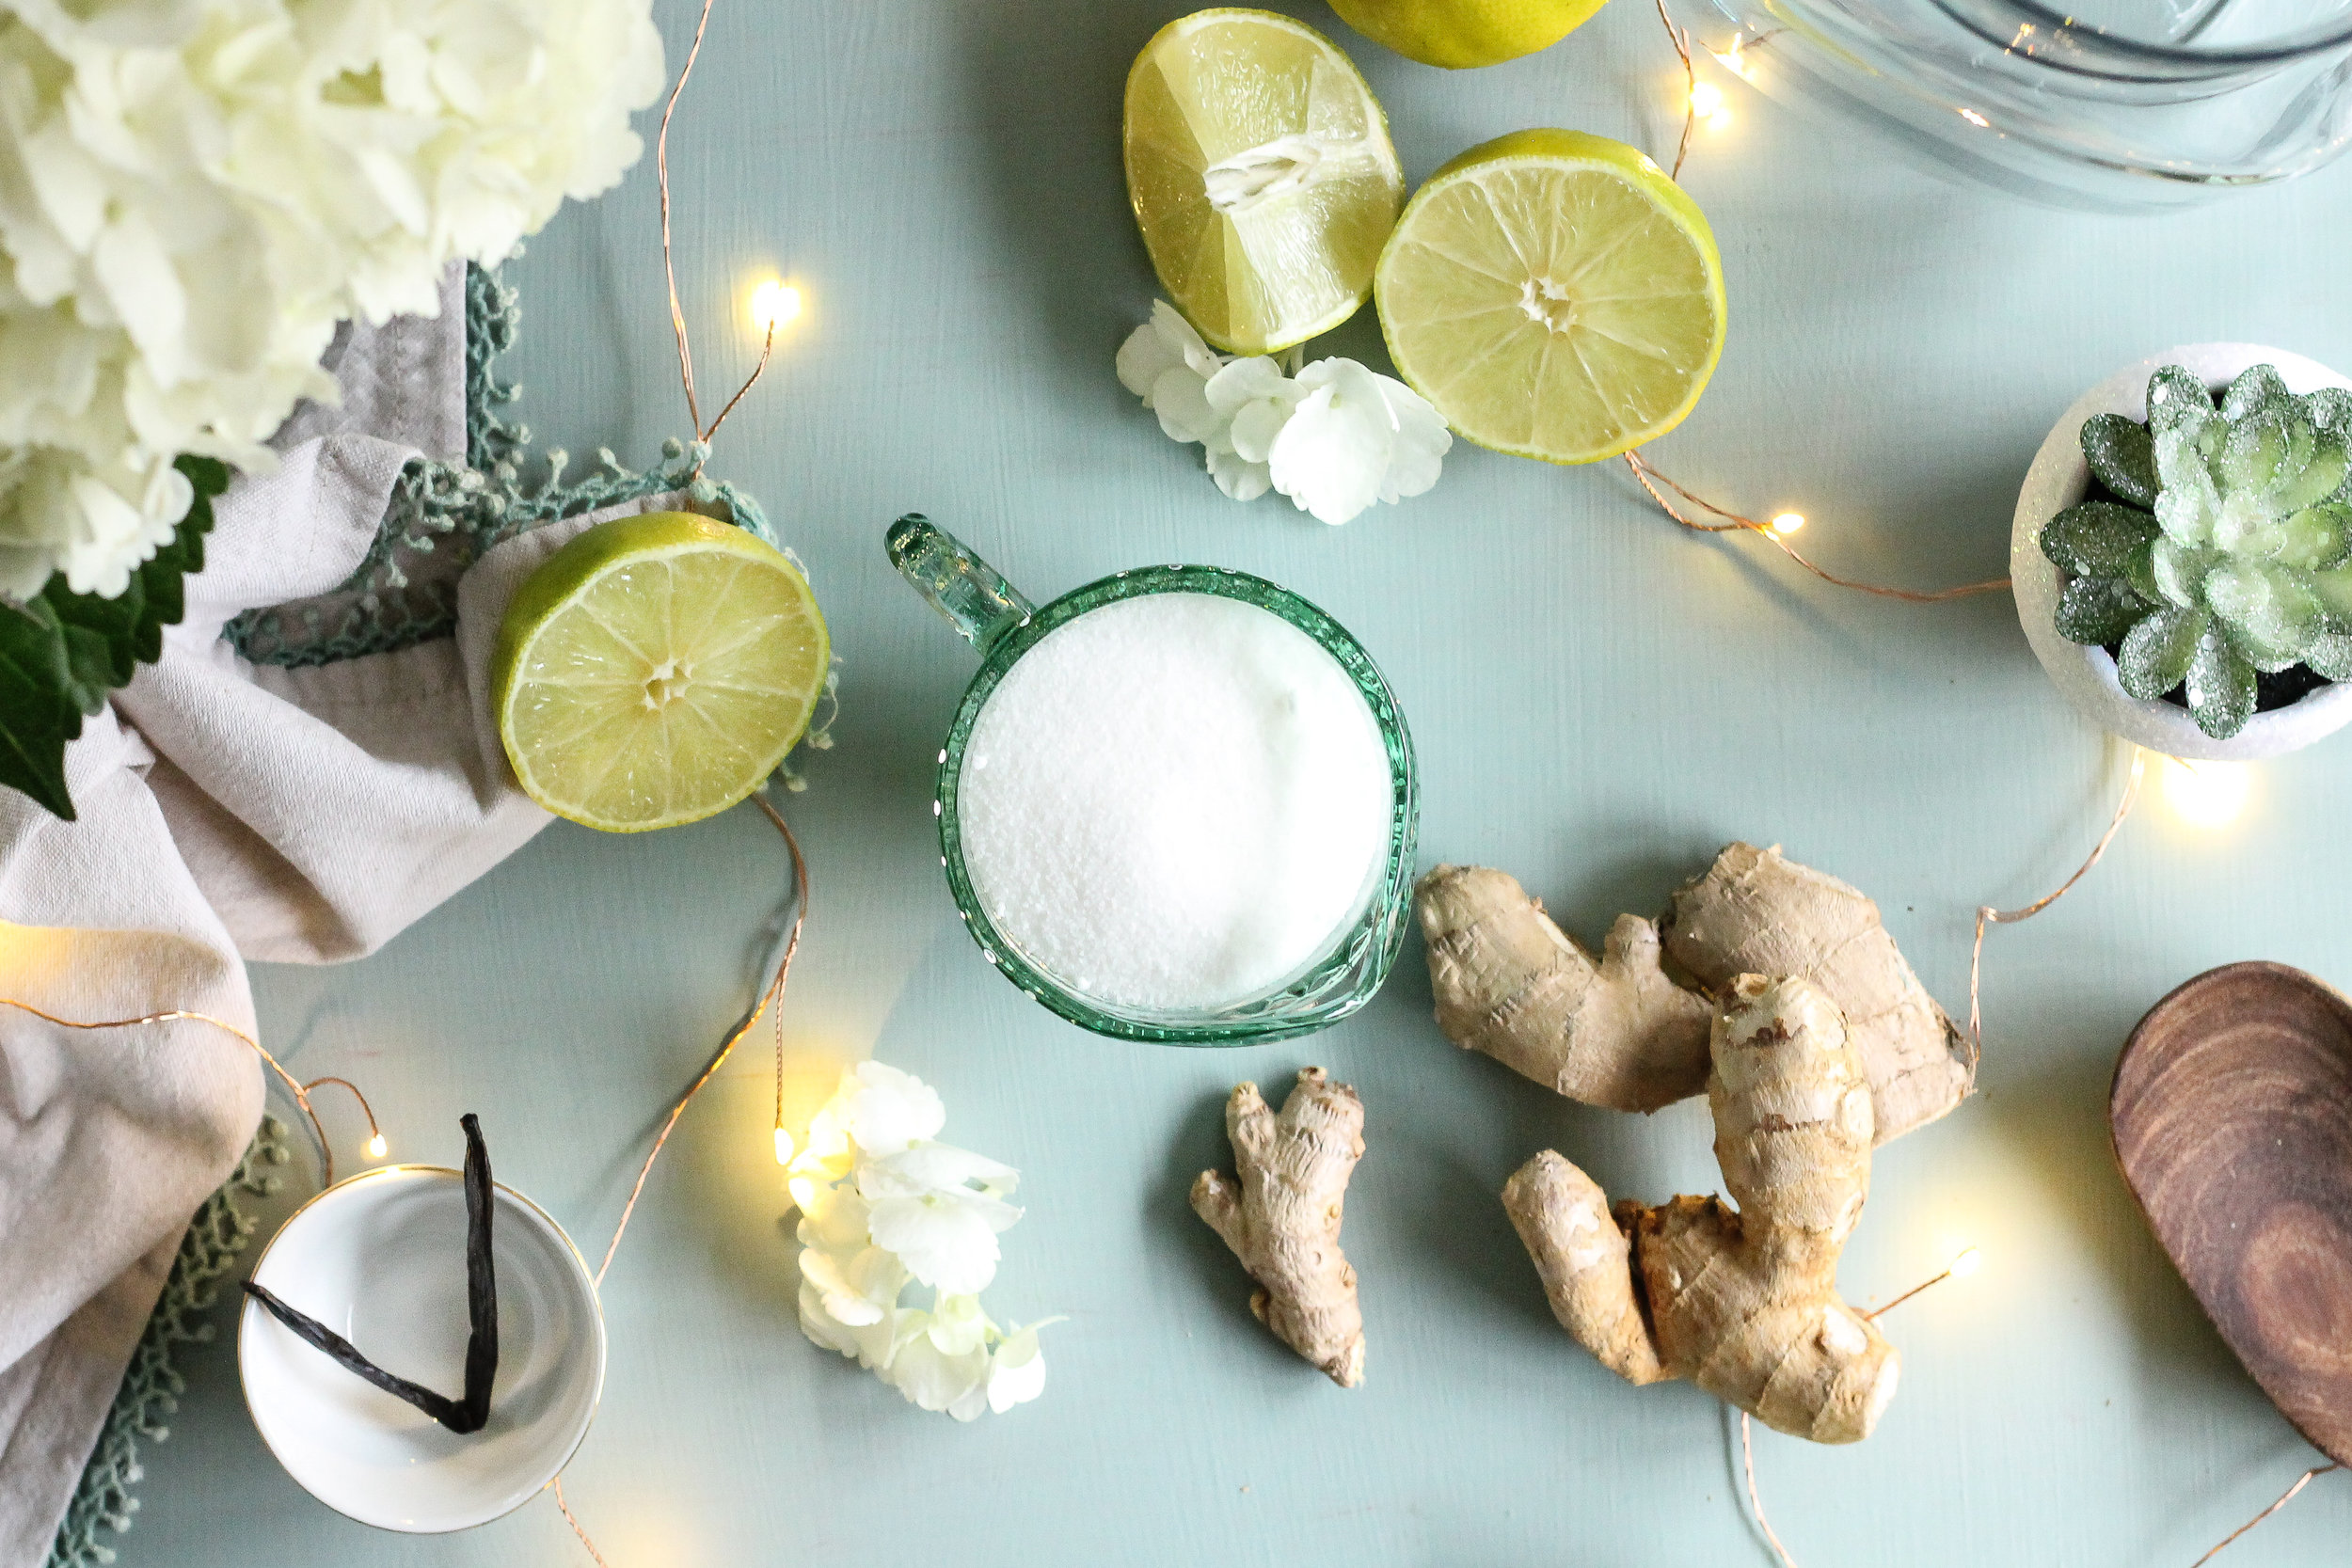 Look no further for your winter tonic!!  This Vanilla-Lime Ginger Ale is a taste of winter with spicy fresh ginger, sweet vanilla bean, and bright citrus!  Find the recipe on www.pedanticfoodie.com!